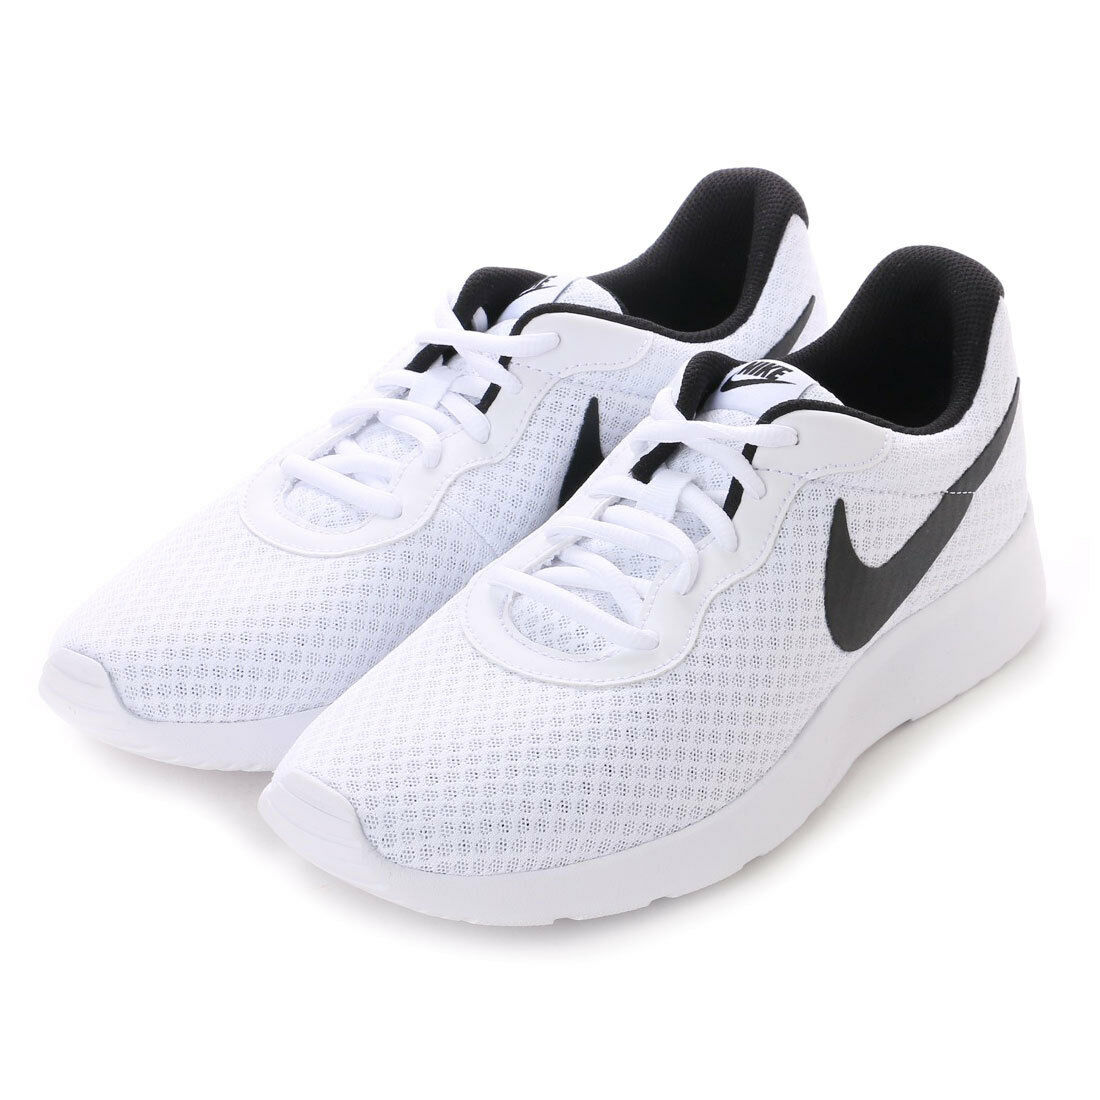 Nike Tanjun White Black For Men's Running shoes New In Box 812654-101